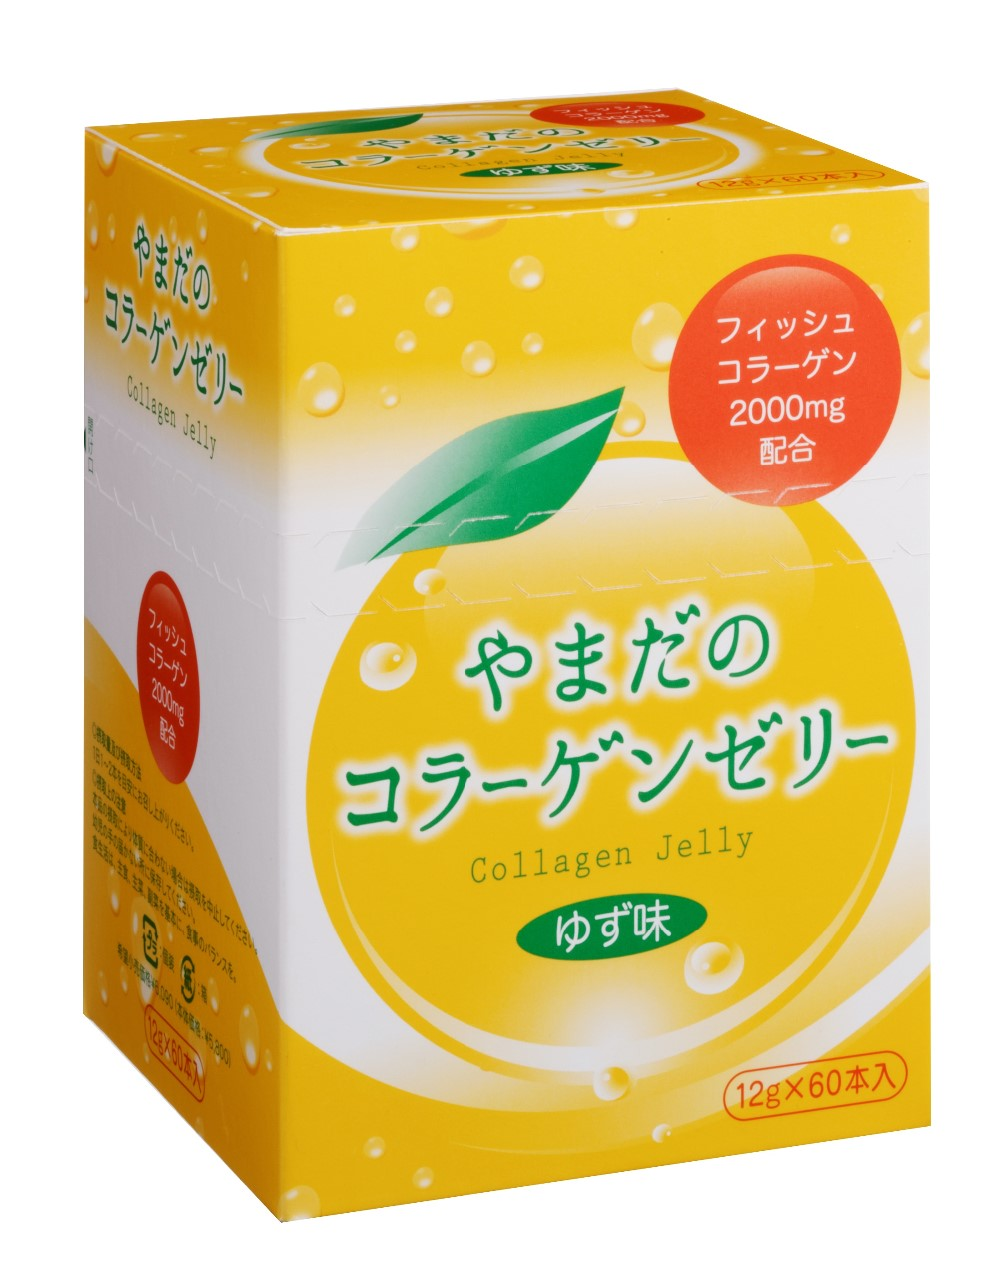 Collagen Jelly made in Japan Yuzu Orange Flavor, 20 sticks box, beauty & health, OEM available